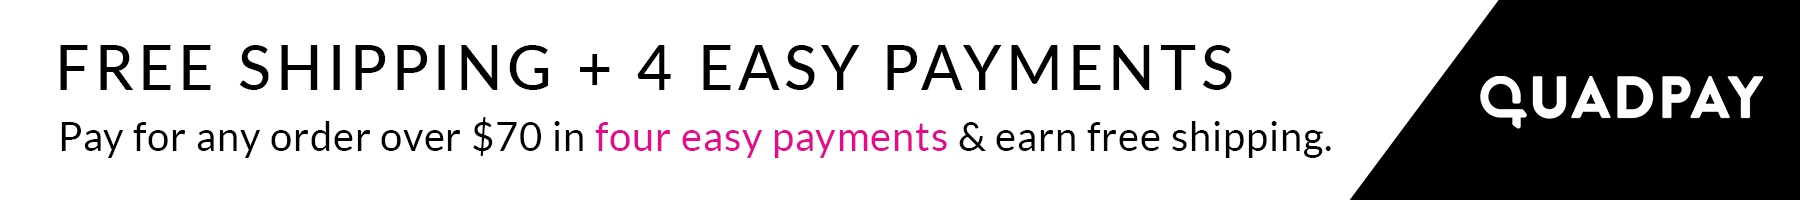 Free shipping + 4 easy payments with QuadPay on orders over $70